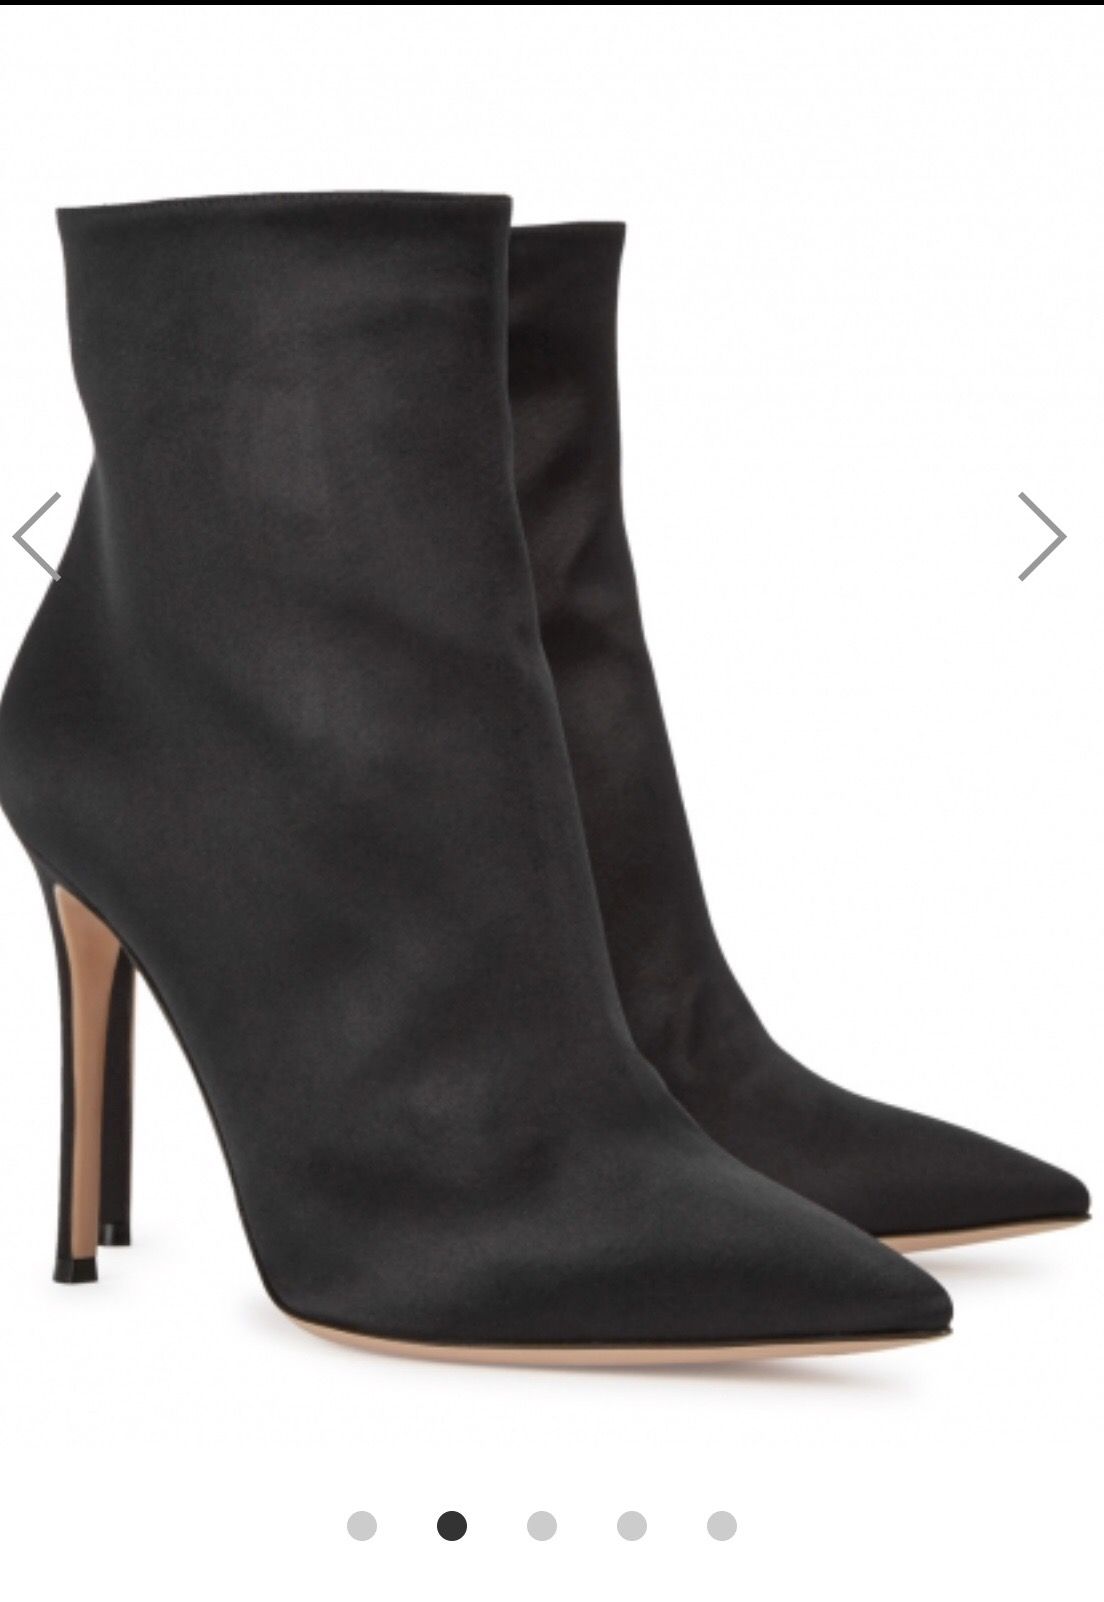 9ab4ae569d2 SHOES  Gianvito Rossi https   www.harveynichols.com brand  gianvito-rossi 228054-arles-black-satin-ankle-boots p2991940